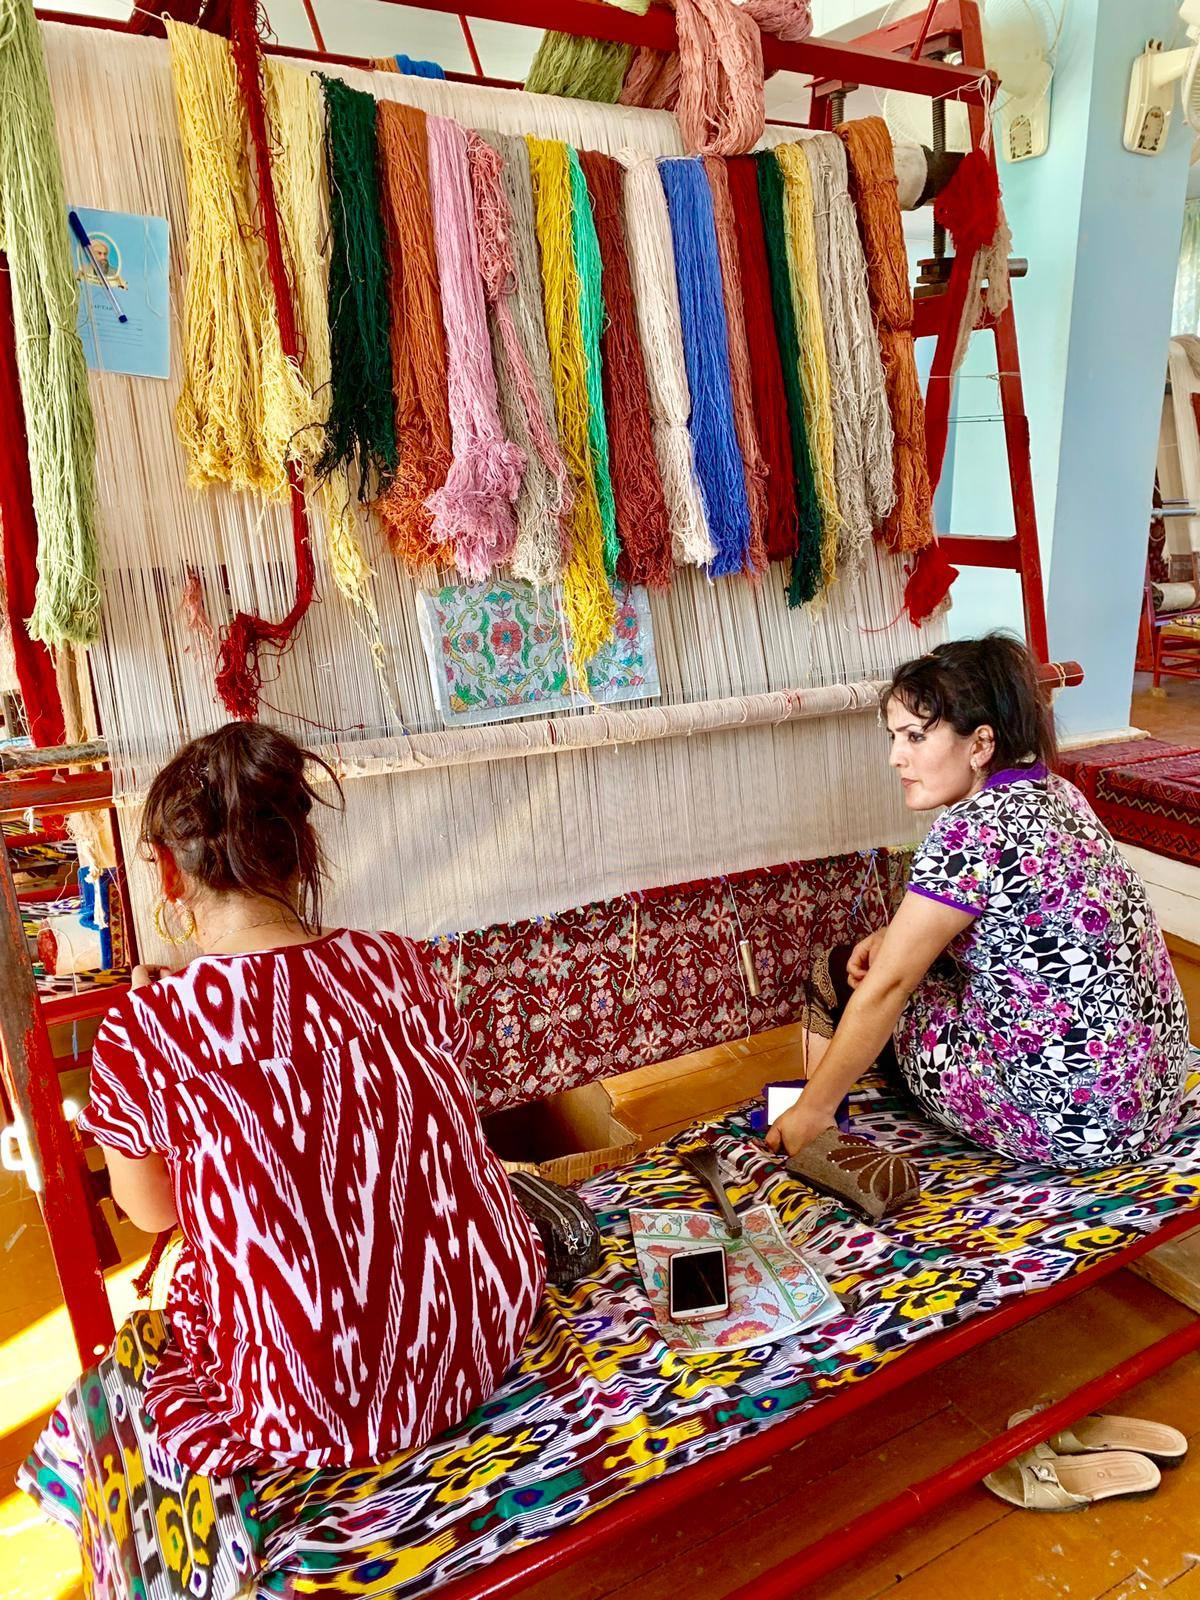 Kach Solo Travels in 2019 Silk Carpet Production and Konigil Village Tour 5.jpg